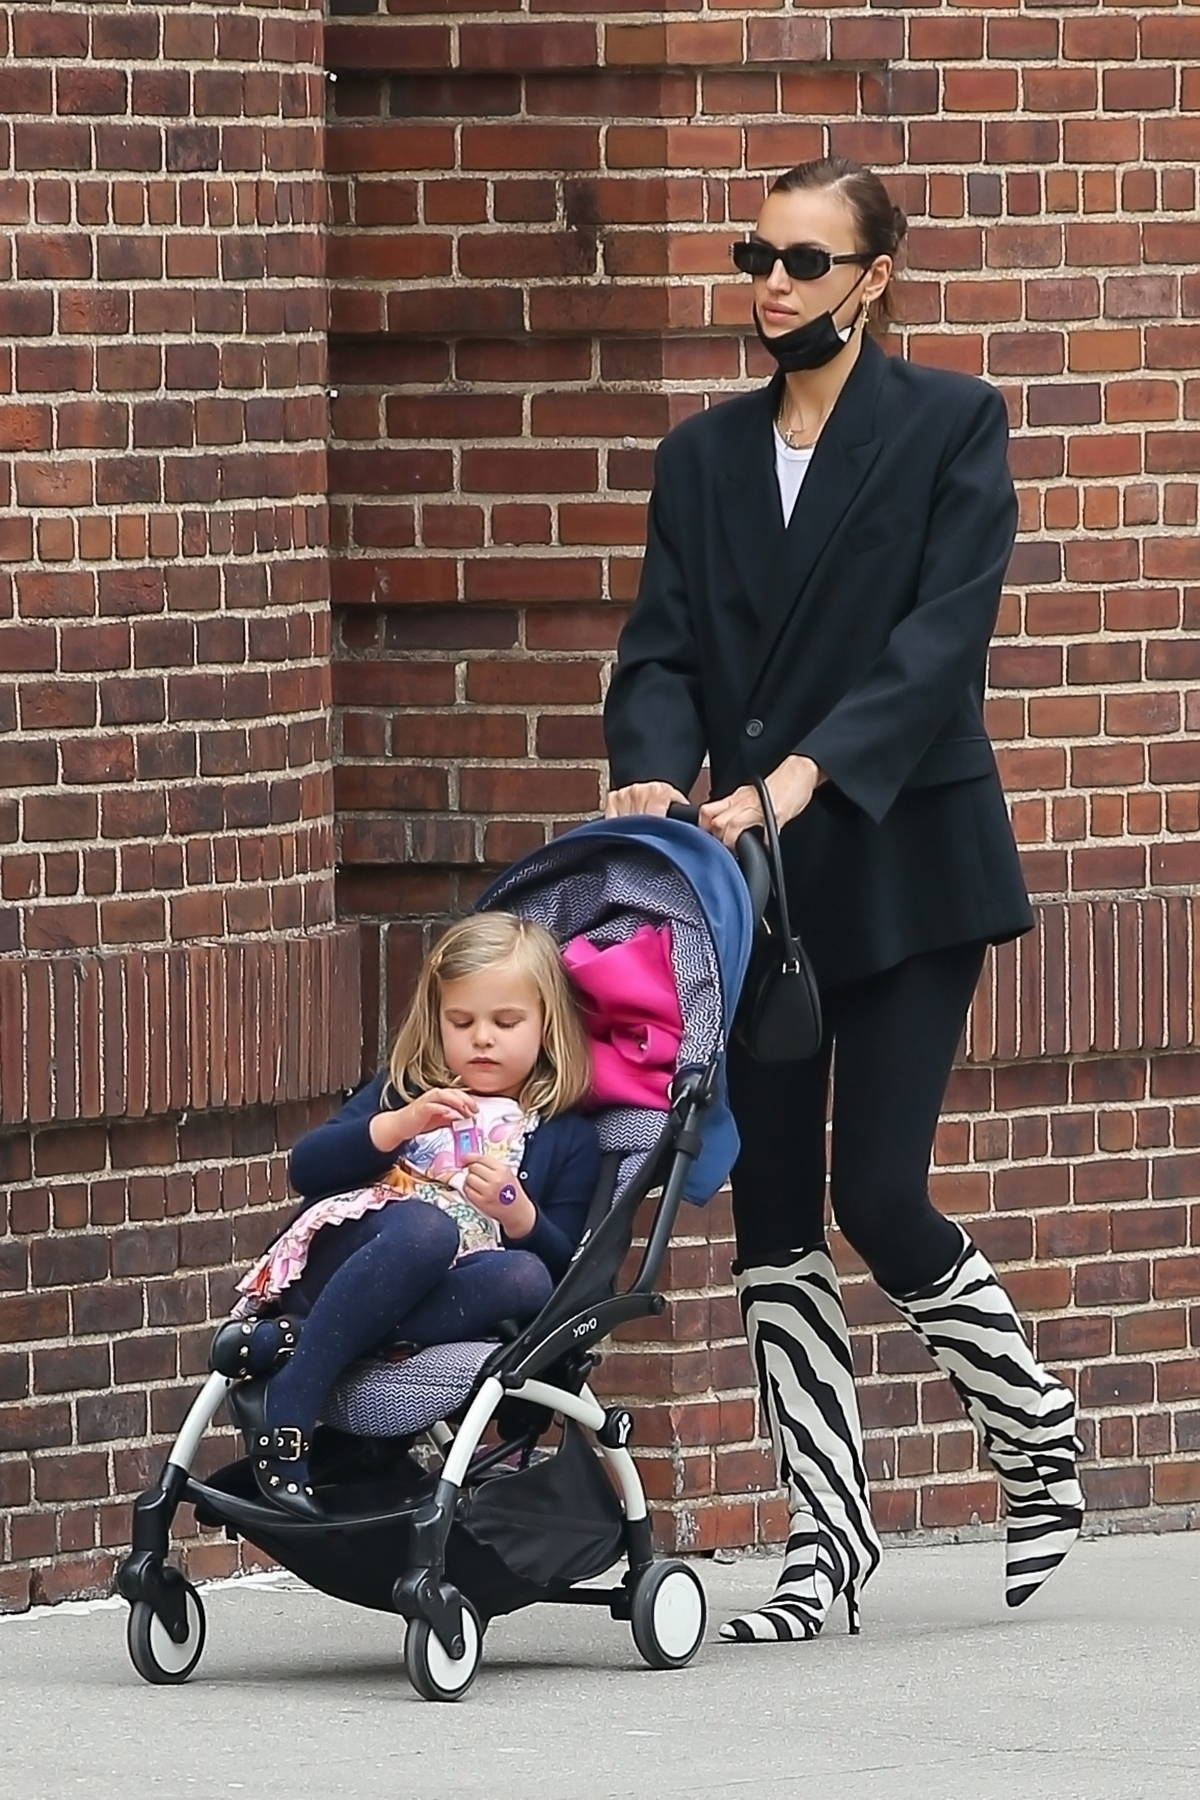 Irina Shayk puts on a stylish display while she picks up her daughter from  school in